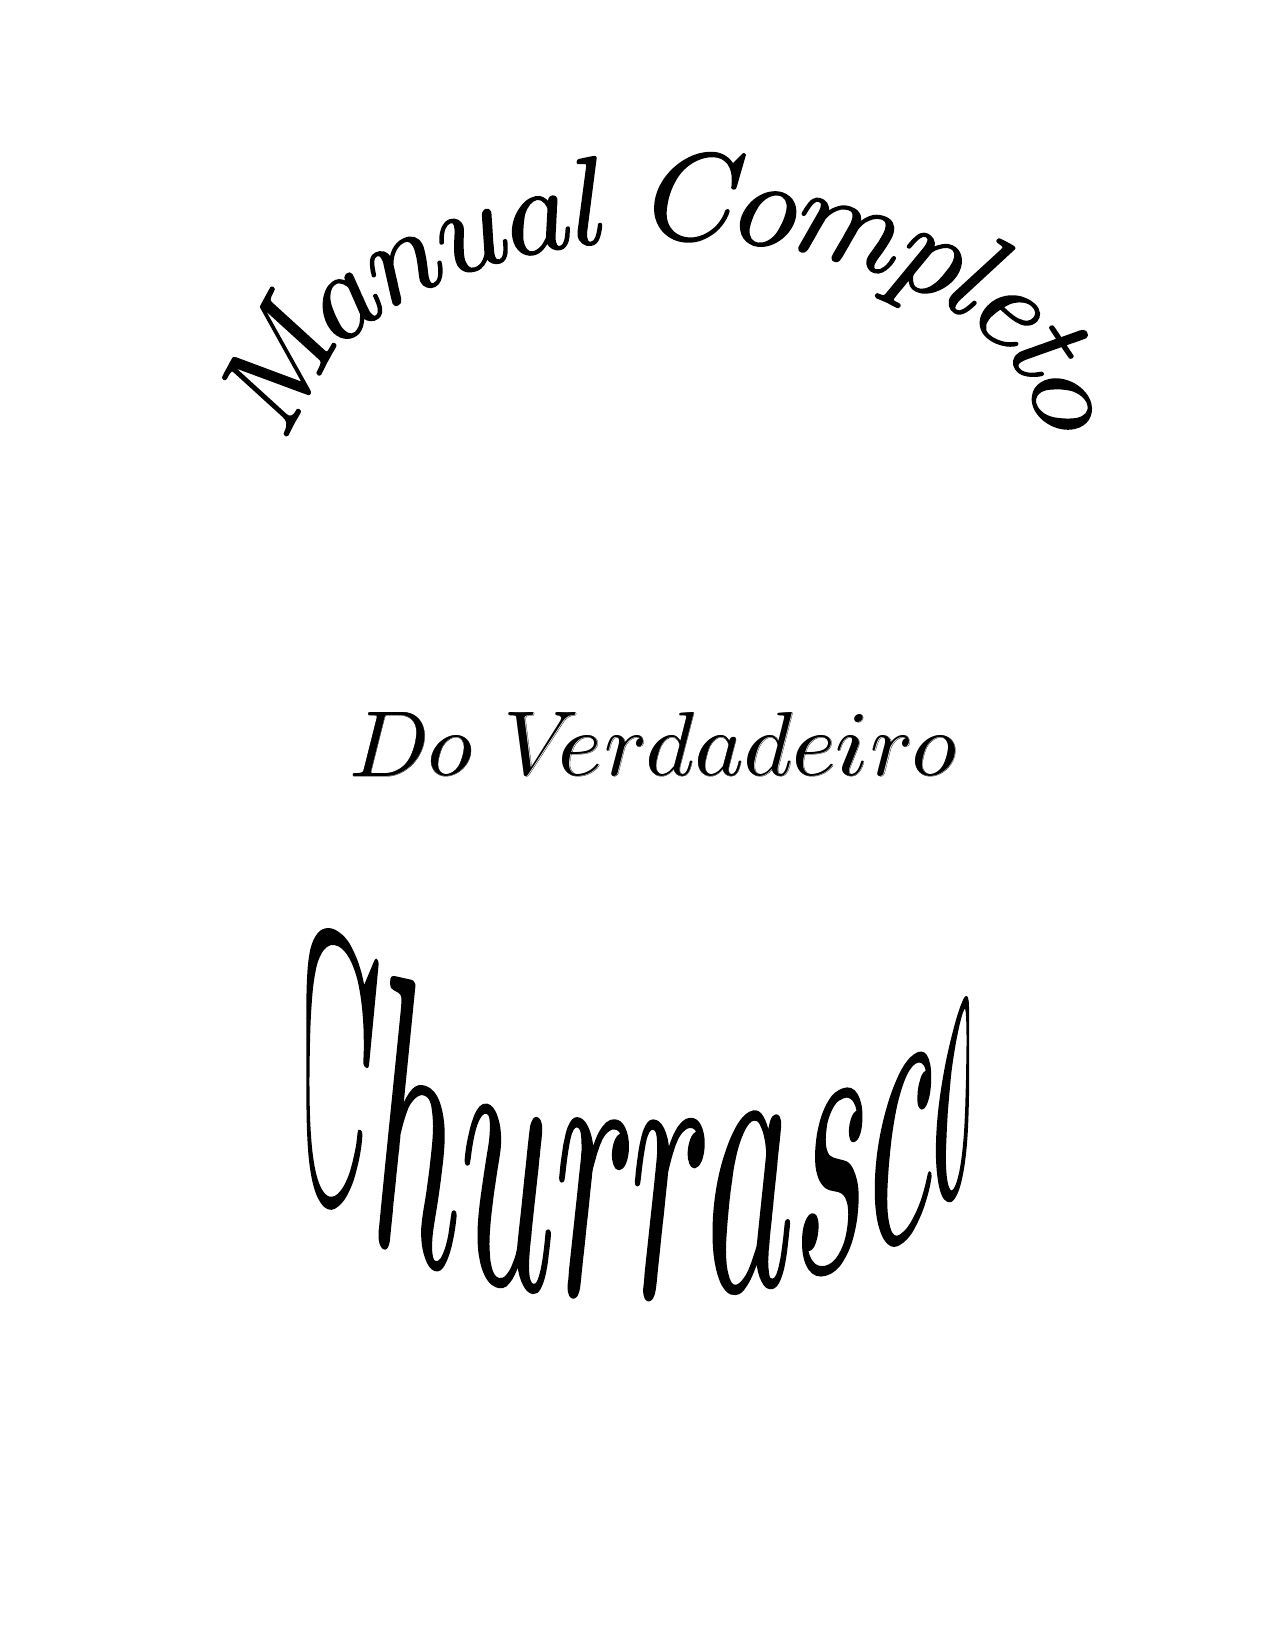 Manual de Churrasco | Books, Names, Digital publishing